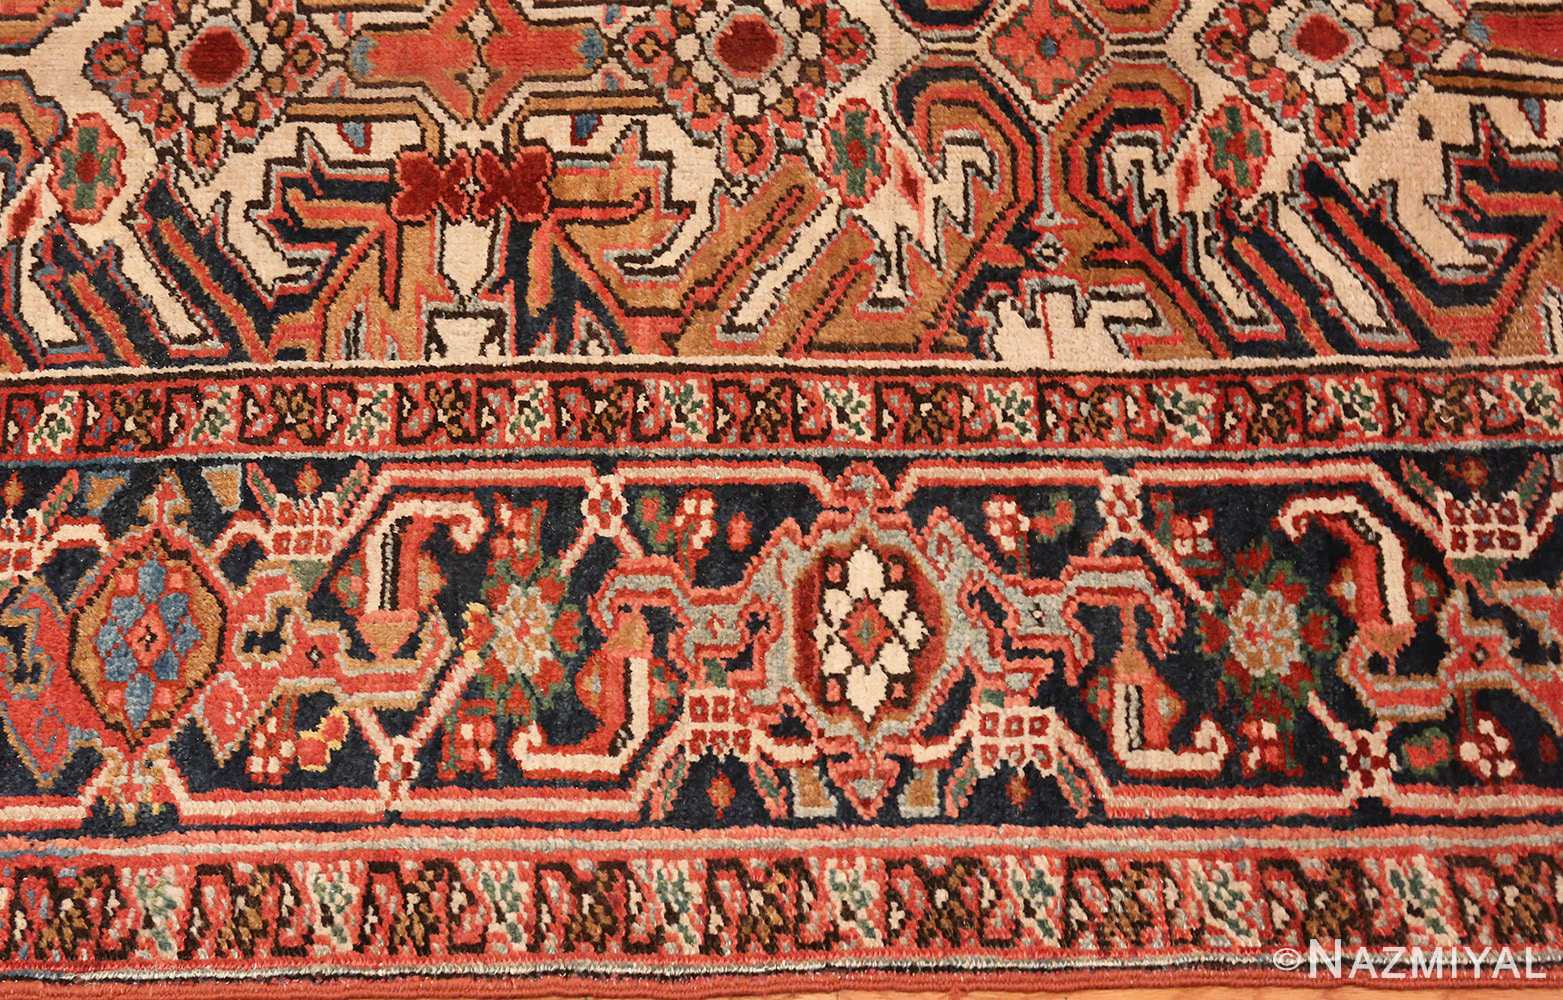 A picture of the border of Antique Persian Heriz rug #47160 from Nazmiyal Antique Rugs in NYC